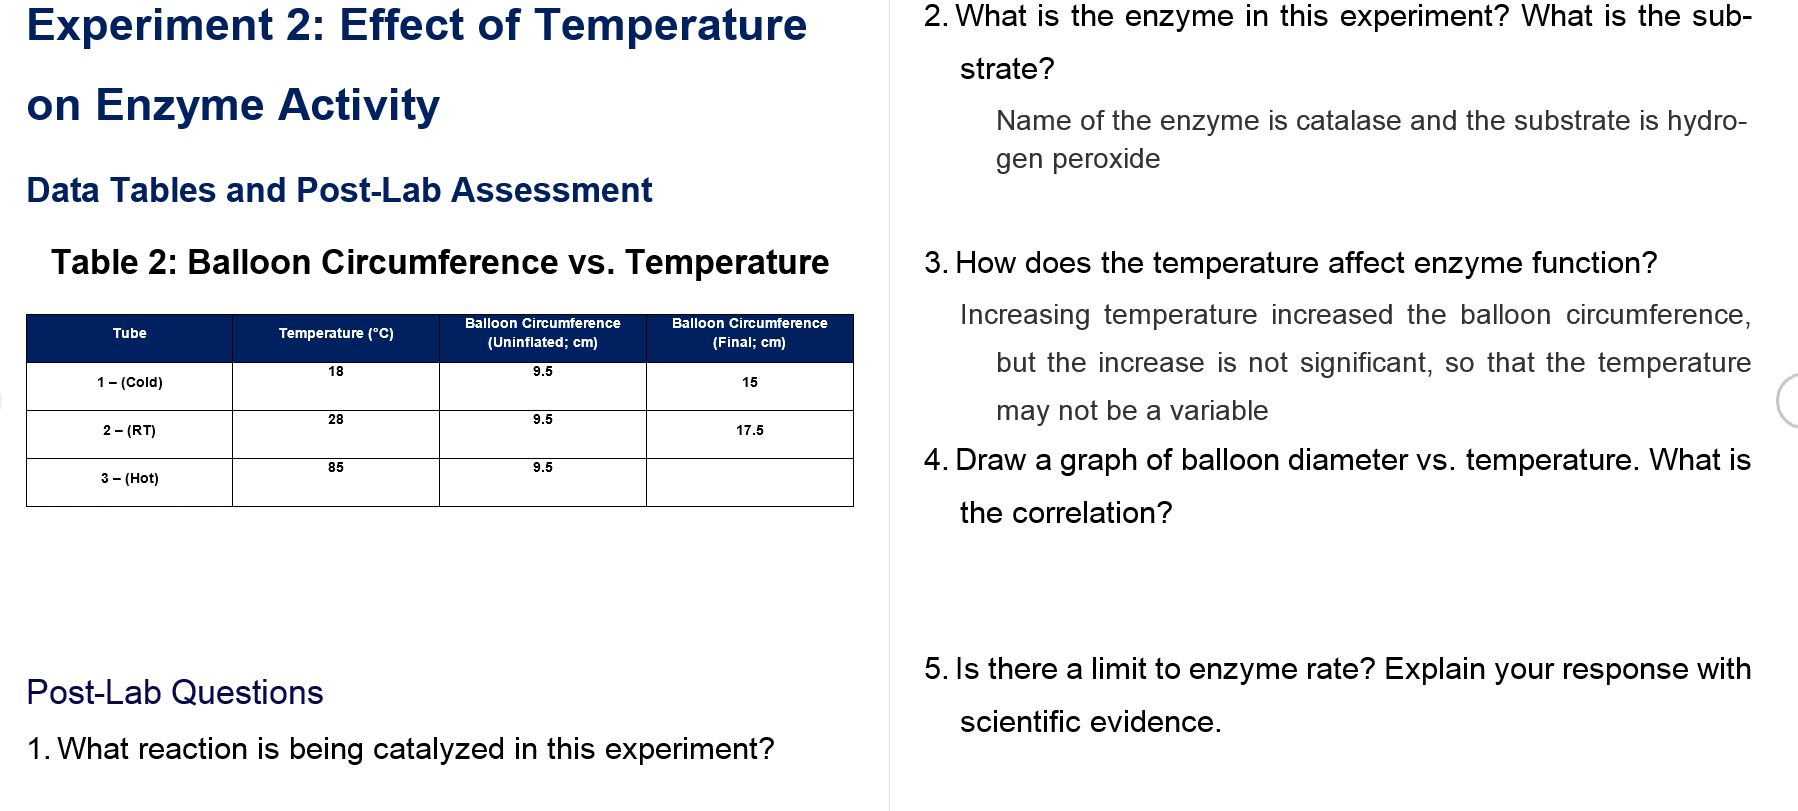 effects of temperature on catalase These results outline the effect of temperature on enzyme activity, and it is apparent that changes in temperature do have an effect on the enzyme catalase conclusion explanation the results obtained give increased insight into the role of enzymes in the human body.